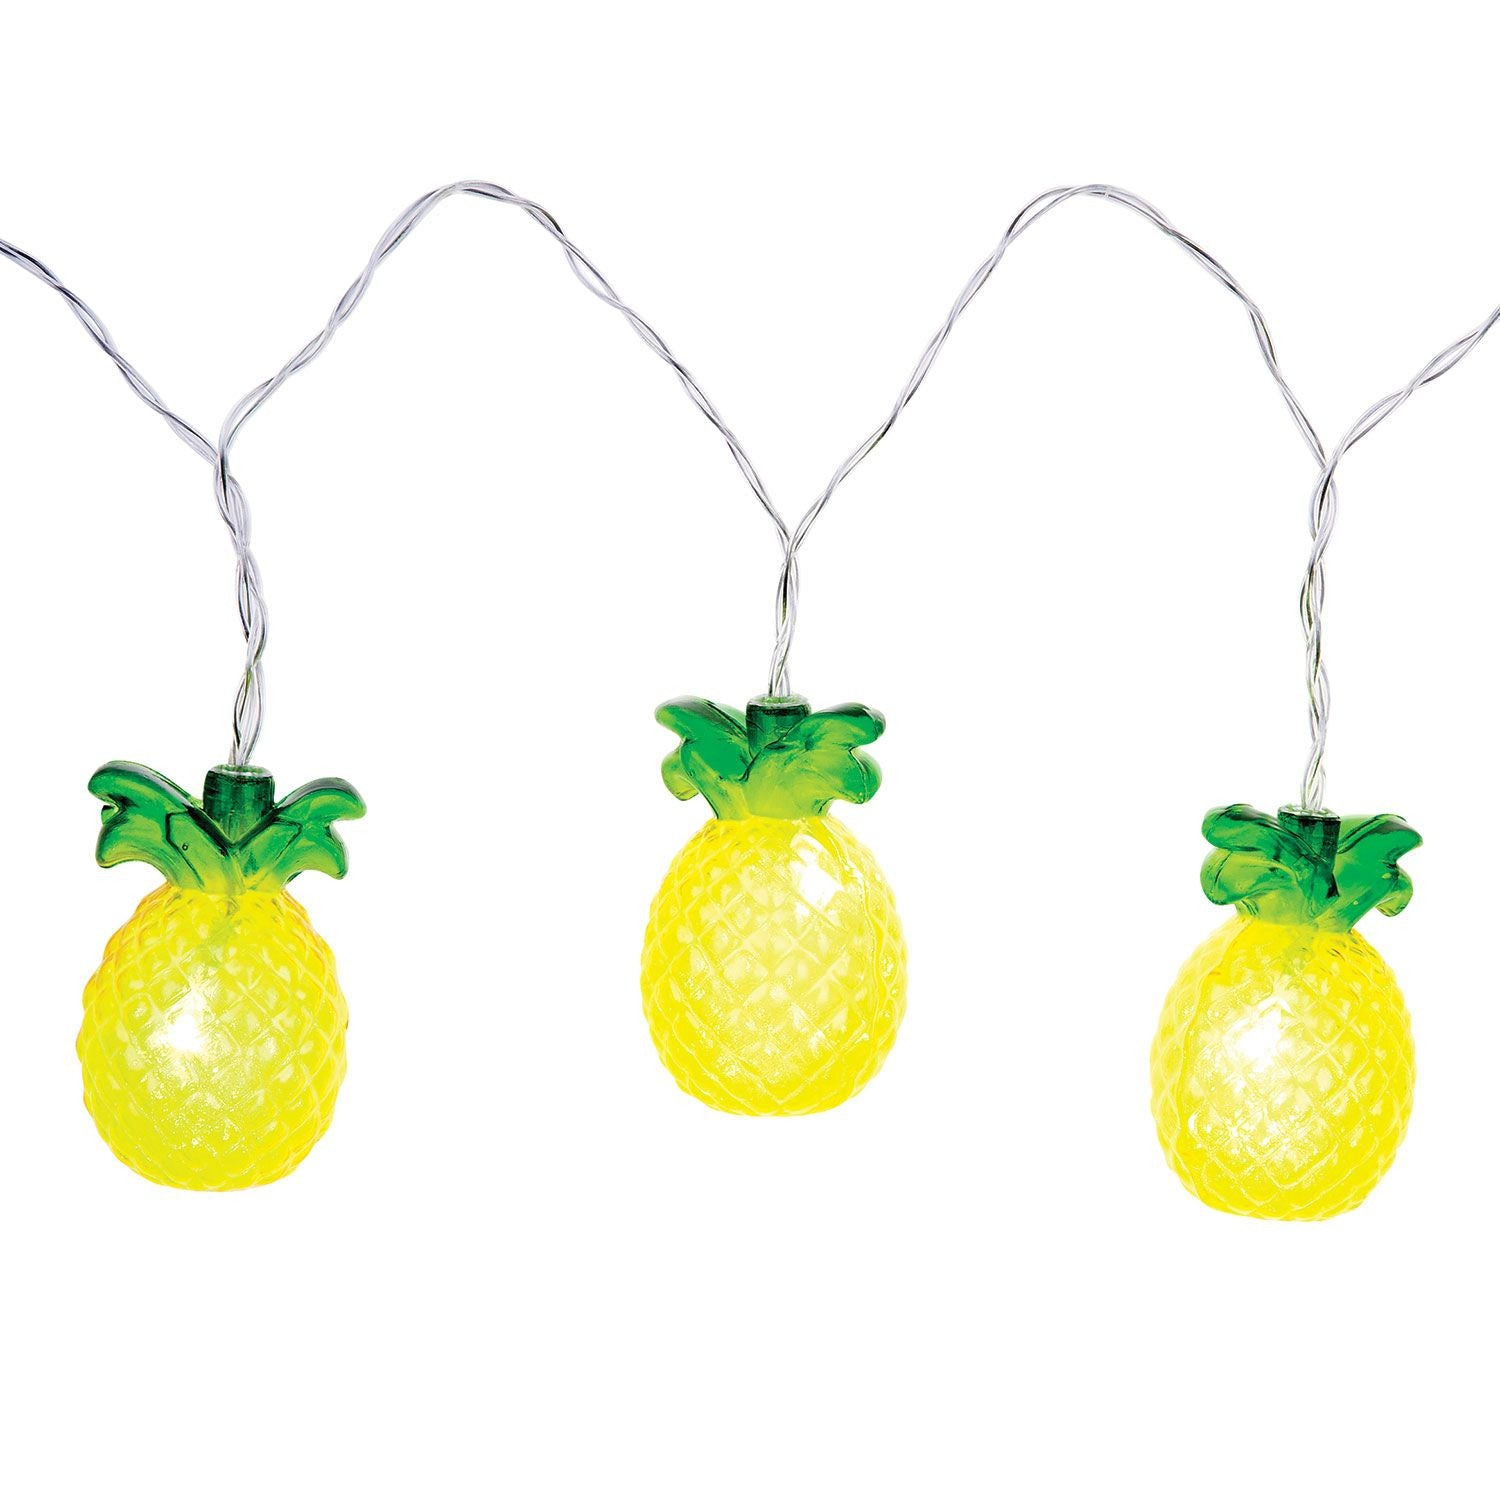 Pineapple String Lights